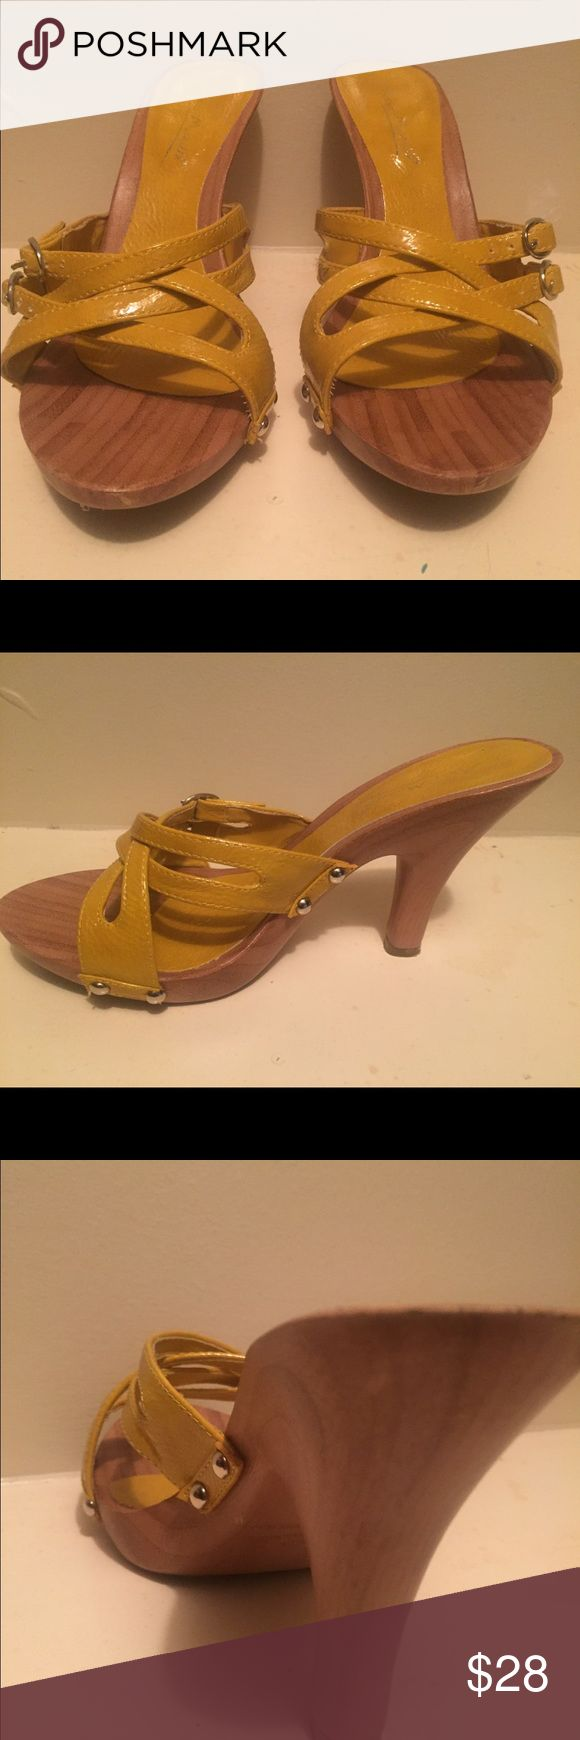 Yellow strappy heels... mustard yellow Wooden heel. In good used condition. Anne Michelle Shoes Heels